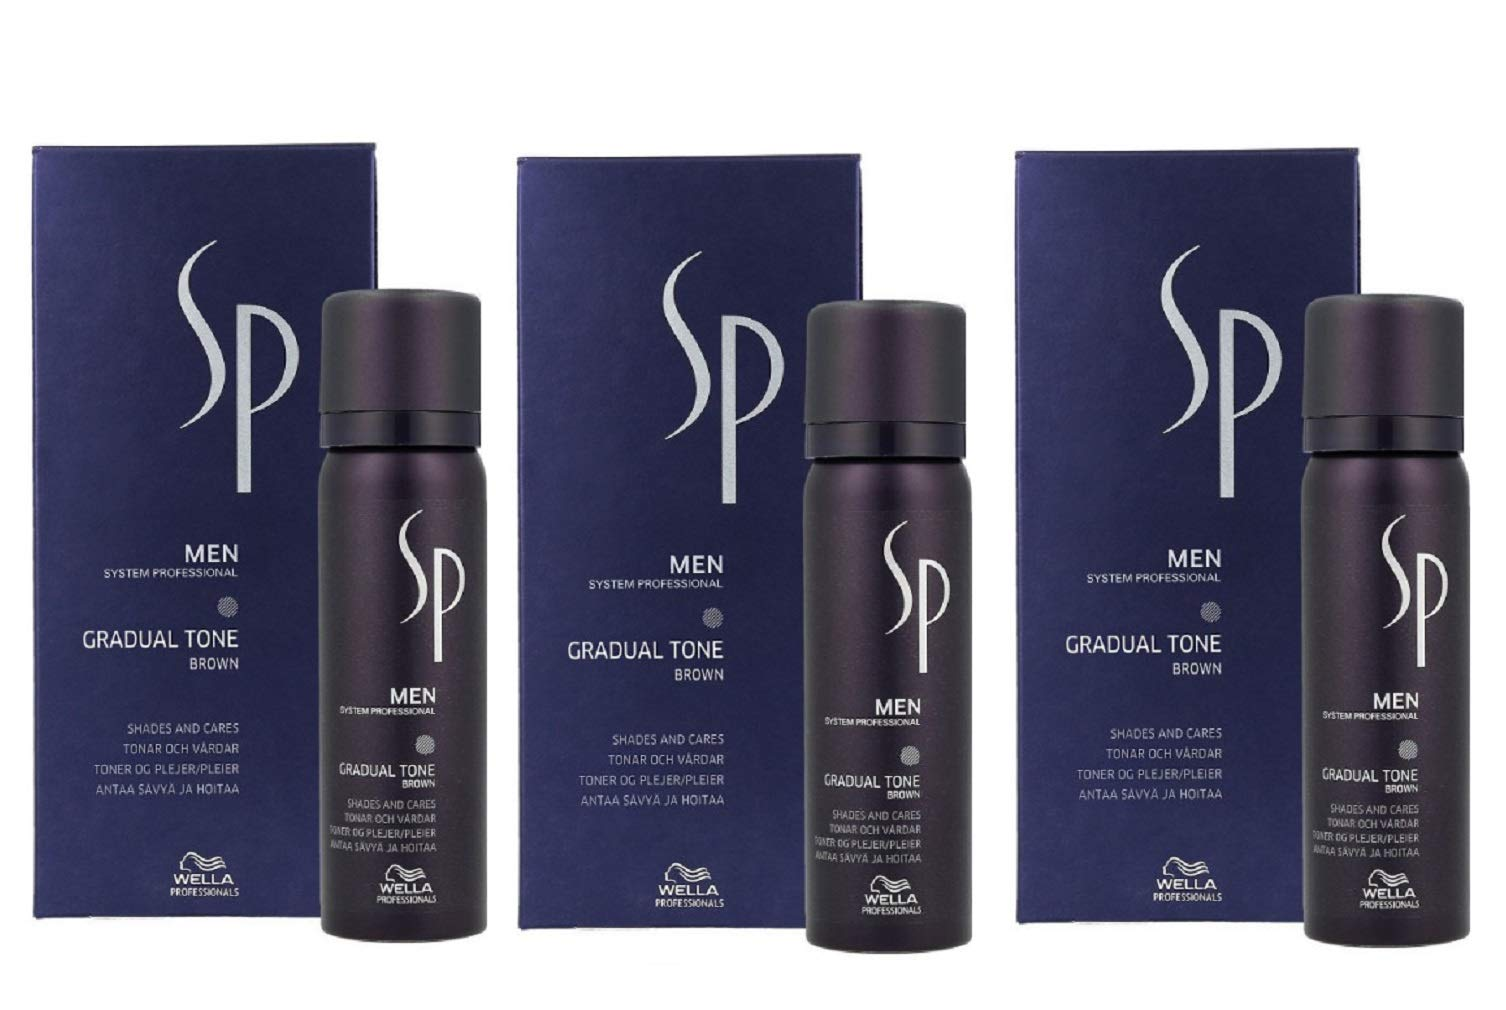 Wella SP Men's Gradual Tone Brown Set 3 x 60ml + 30 ml